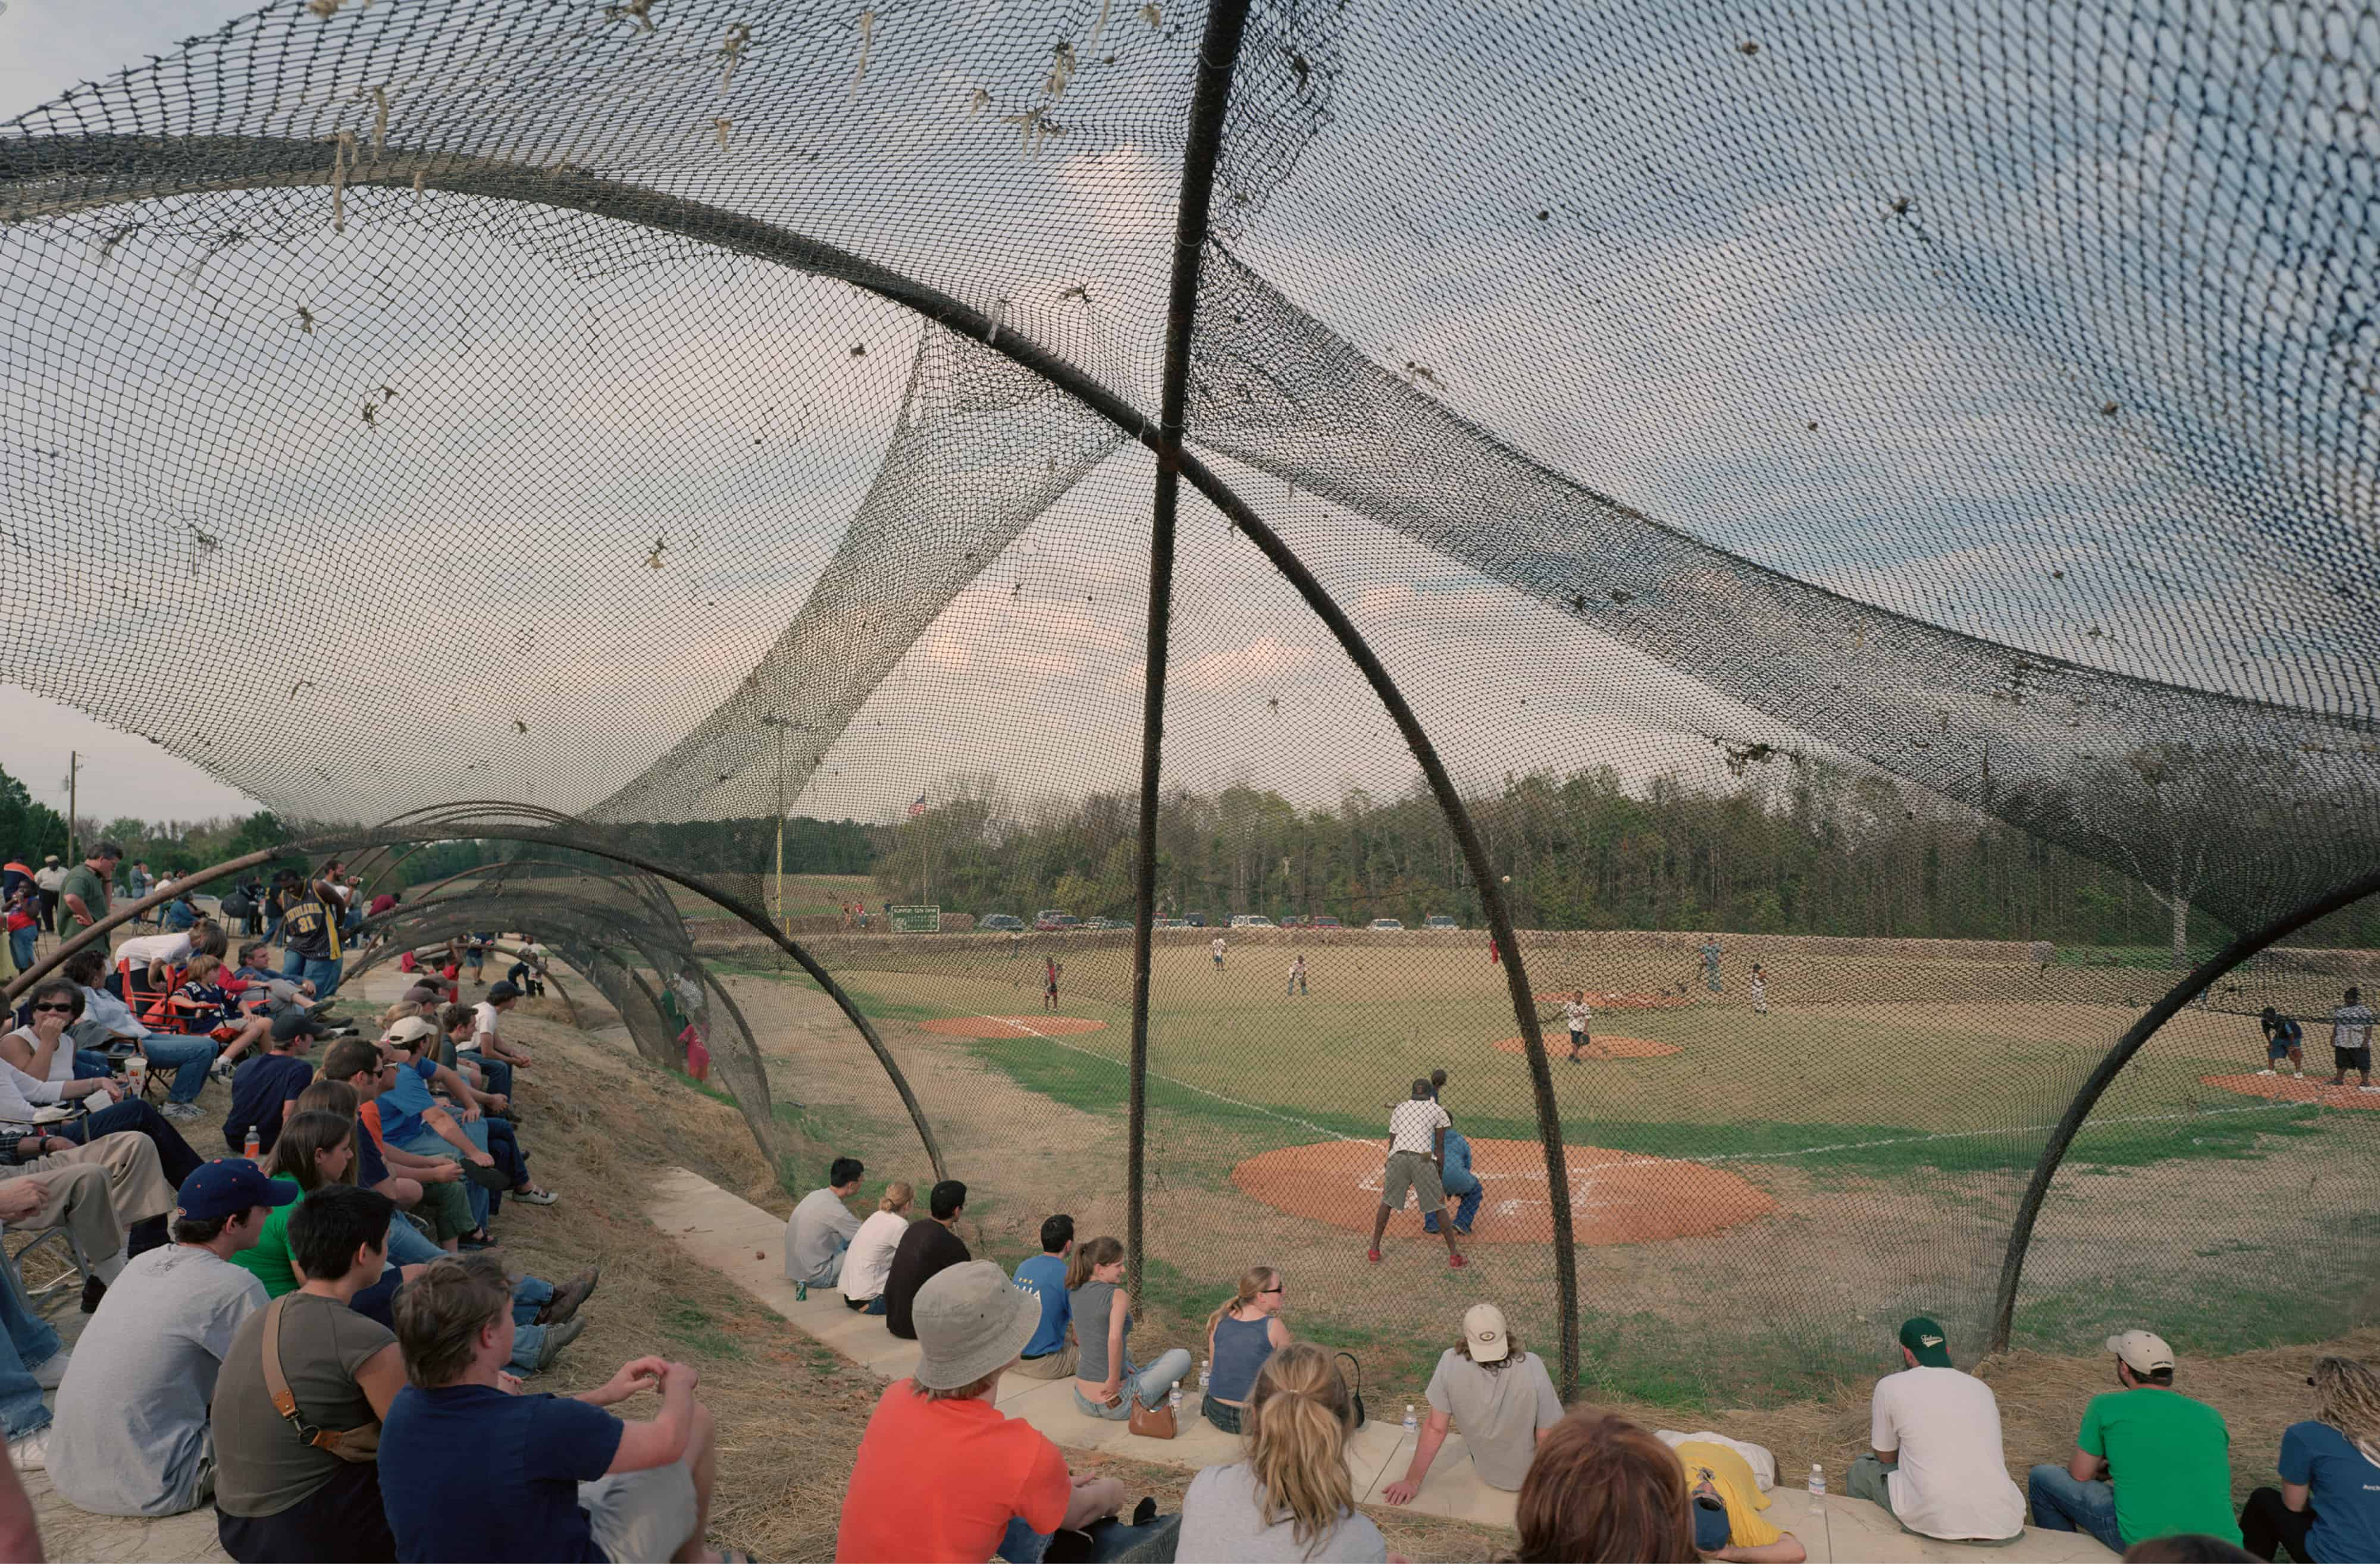 featured image of baseball fields